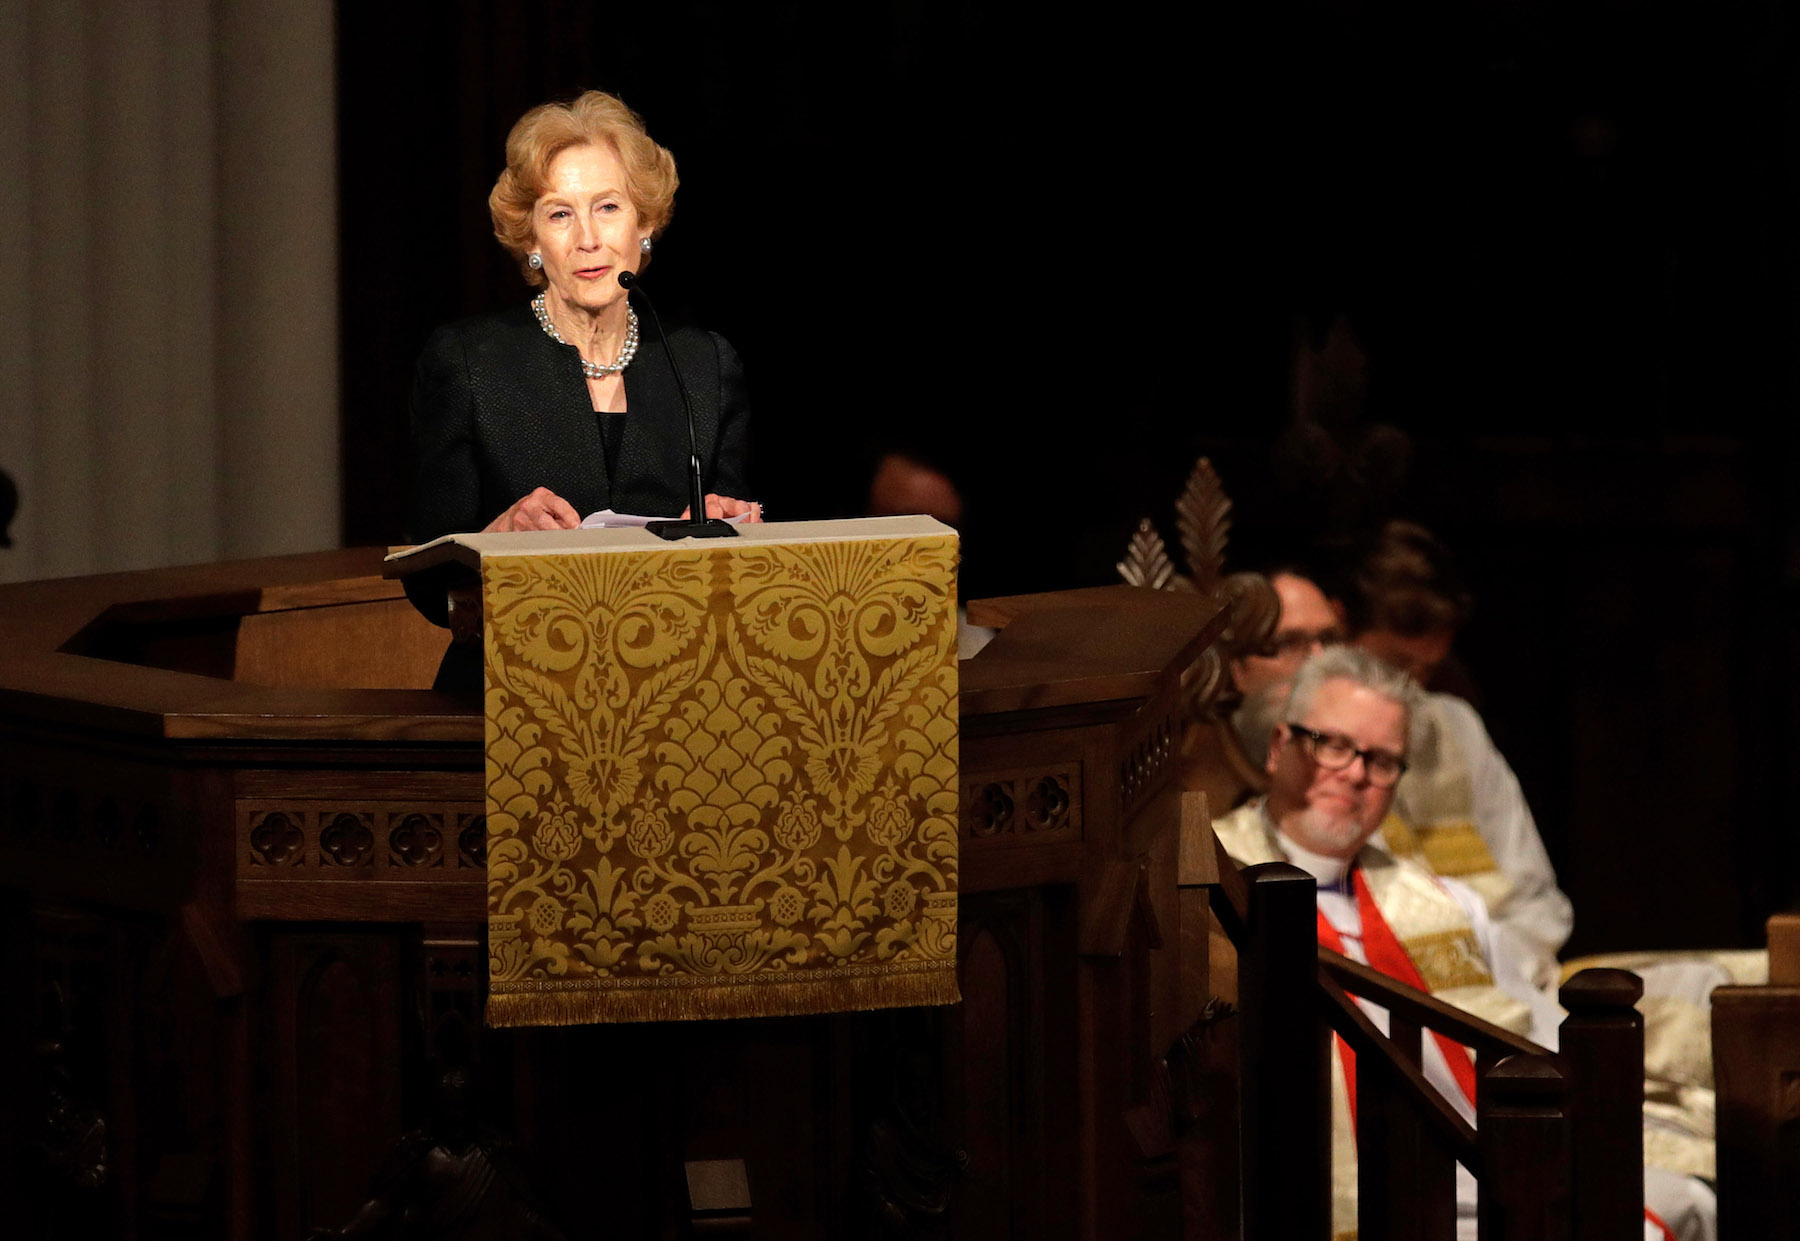 <div class='meta'><div class='origin-logo' data-origin='none'></div><span class='caption-text' data-credit='Getty David J. Phillip-Pool/Getty Images'>Susan Baker speaks during a funeral service for former first lady Barbara Bush at St. Martin's Episcopal Church, April 21, 2018 in Houston, Texas.</span></div>